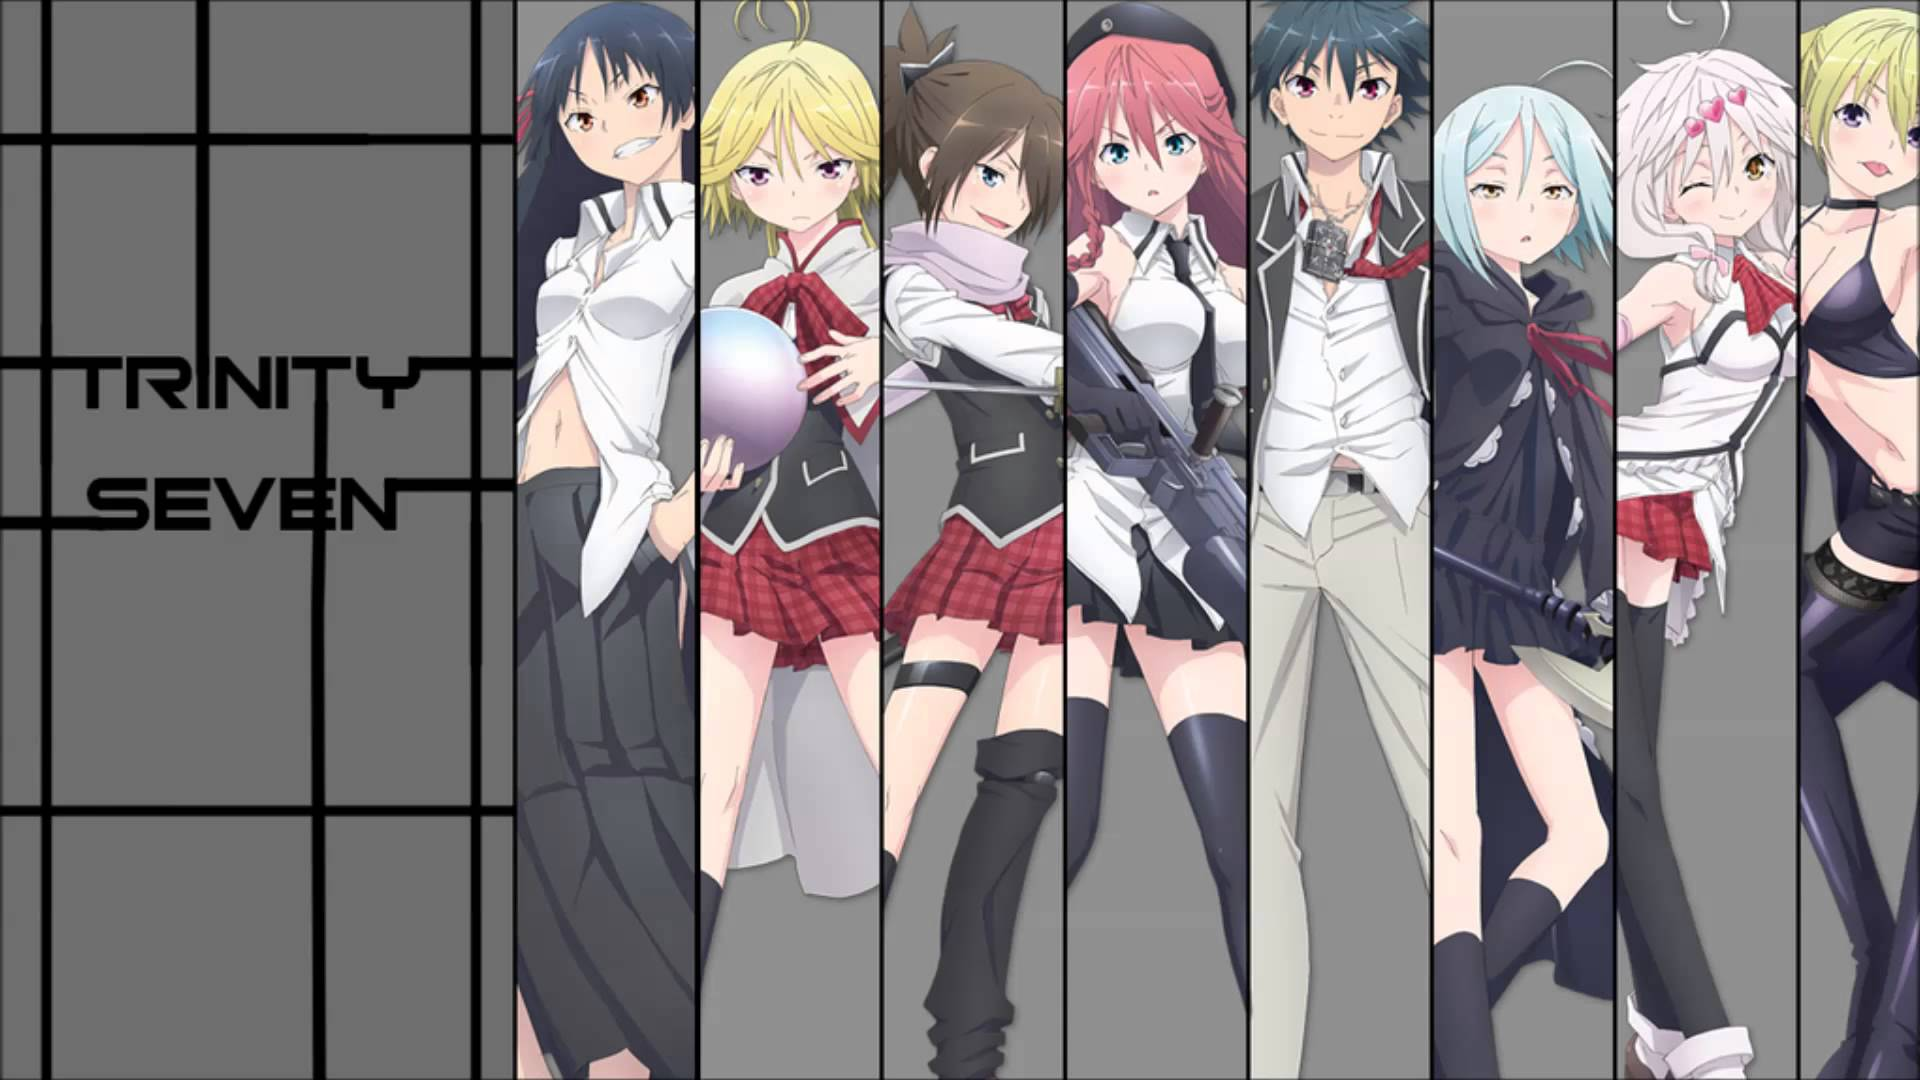 Trinity Seven Image - ID: 193830 - Image Abyss